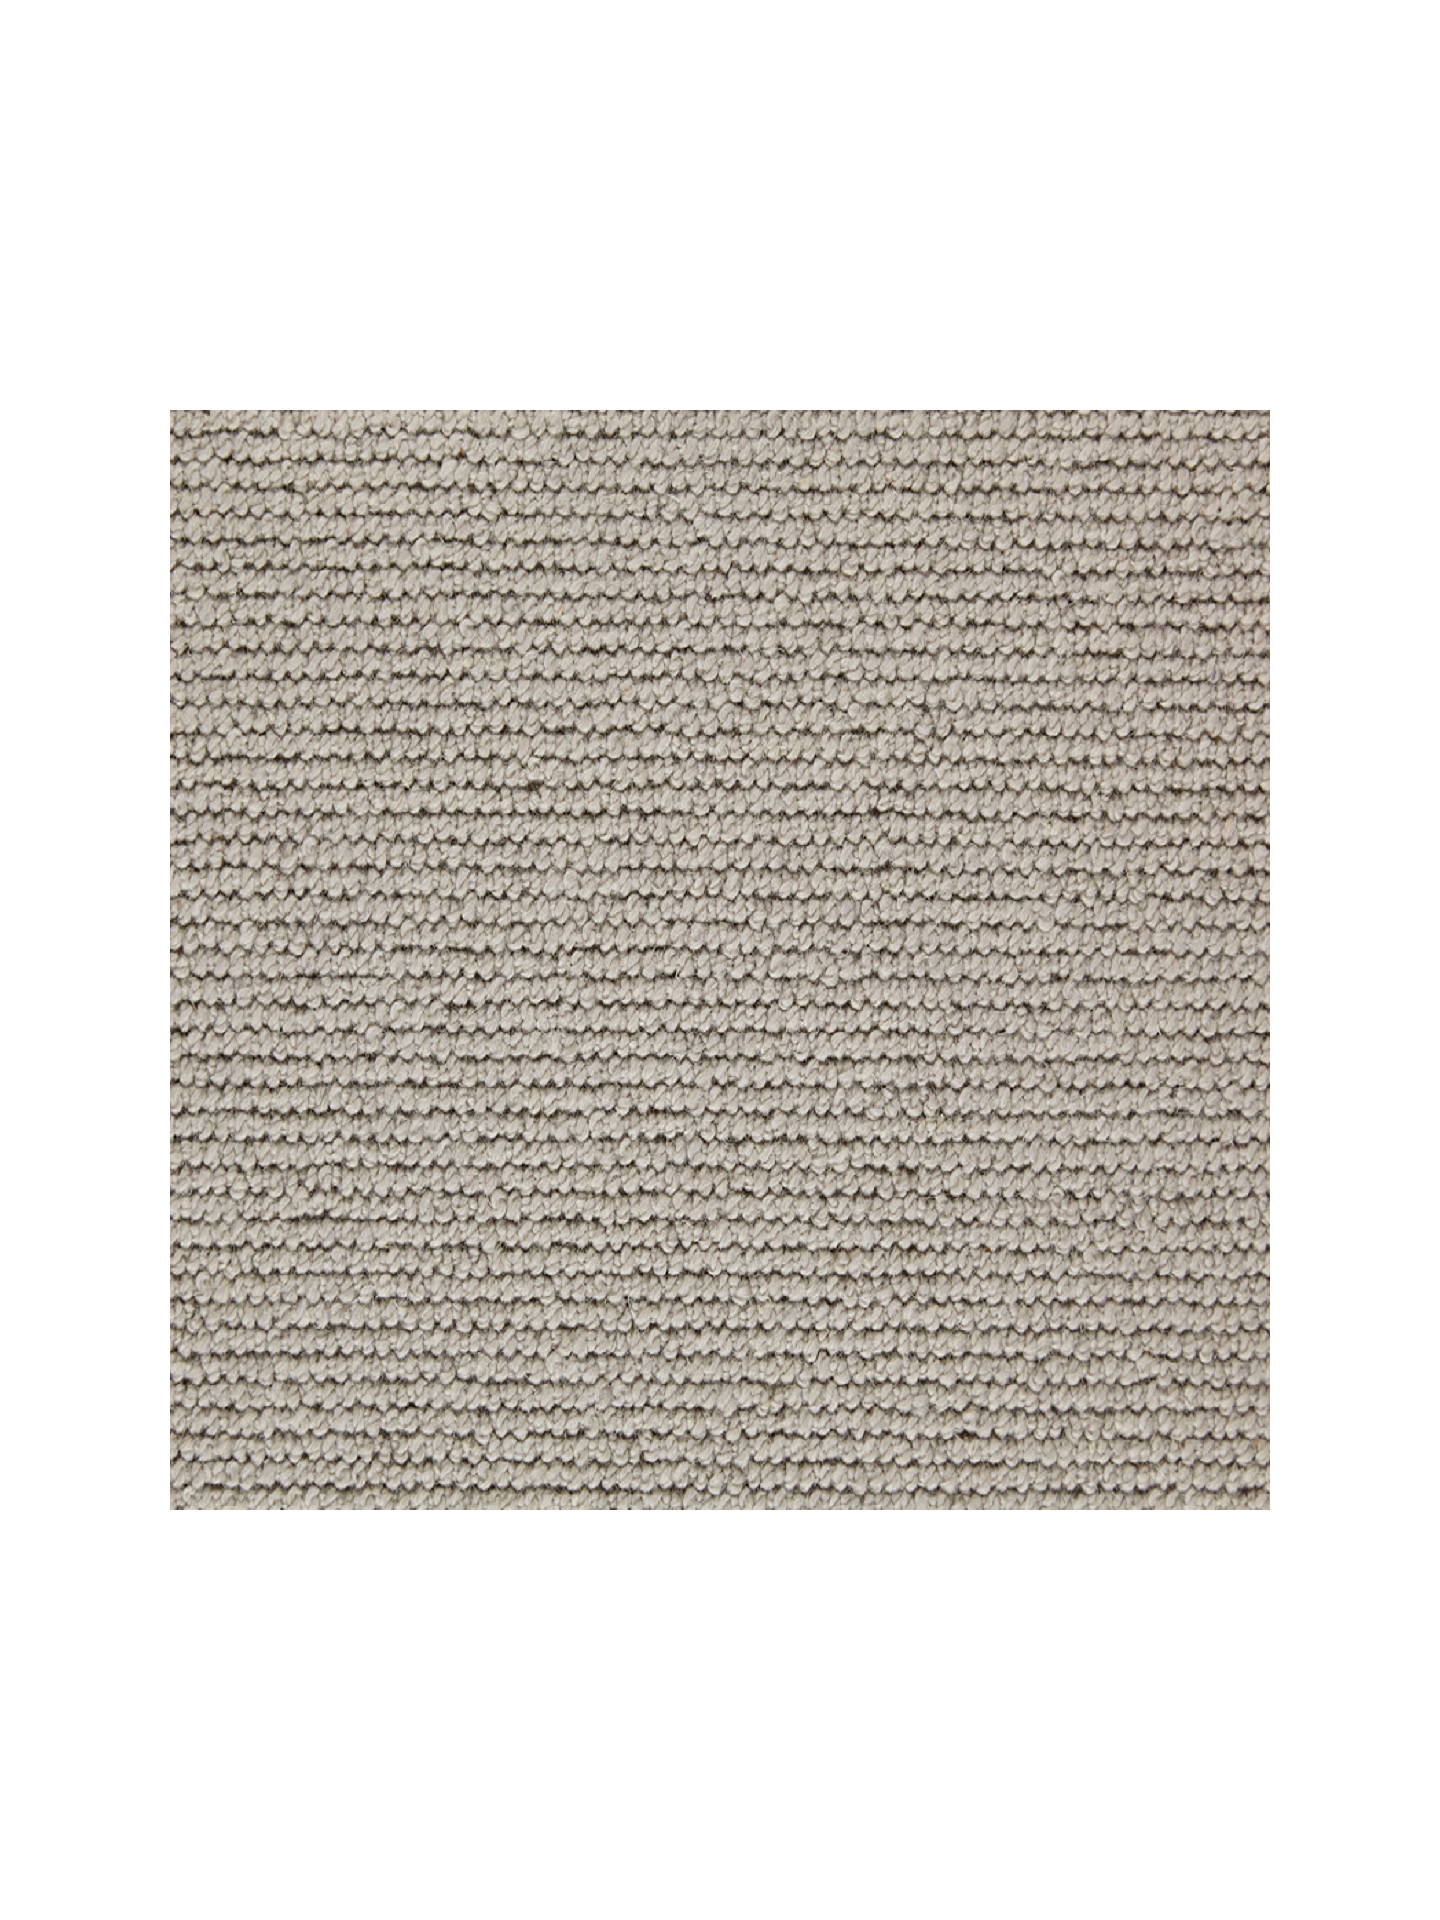 BuyJohn Lewis & Partners Dorset Loop Carpet, Furrow Online at johnlewis.com